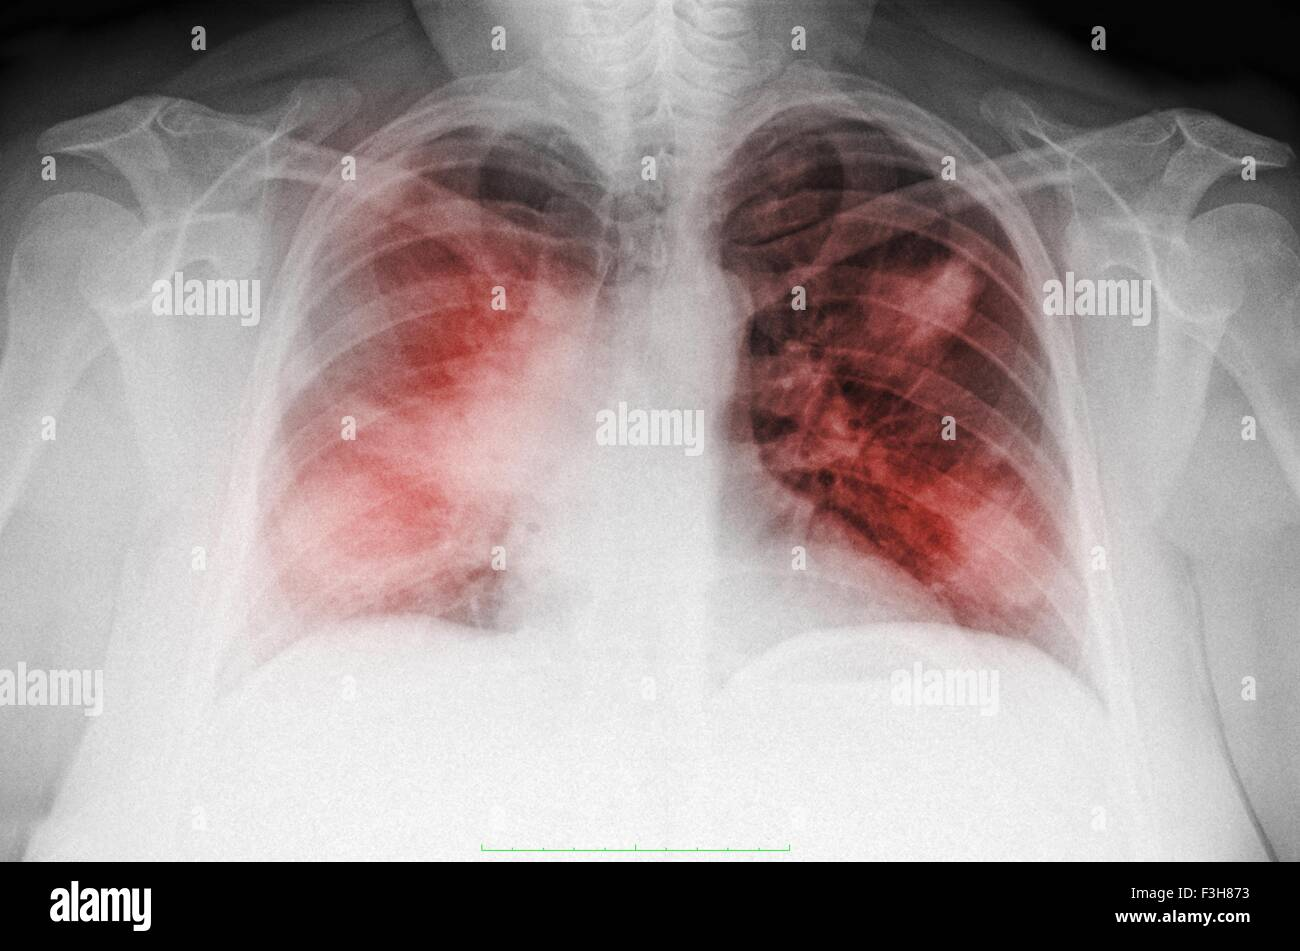 Chest x-ray of a 44 year old woman smoker, PA view, showing diffuse interstitial infiltrates suggestive of an atypical - Stock Image